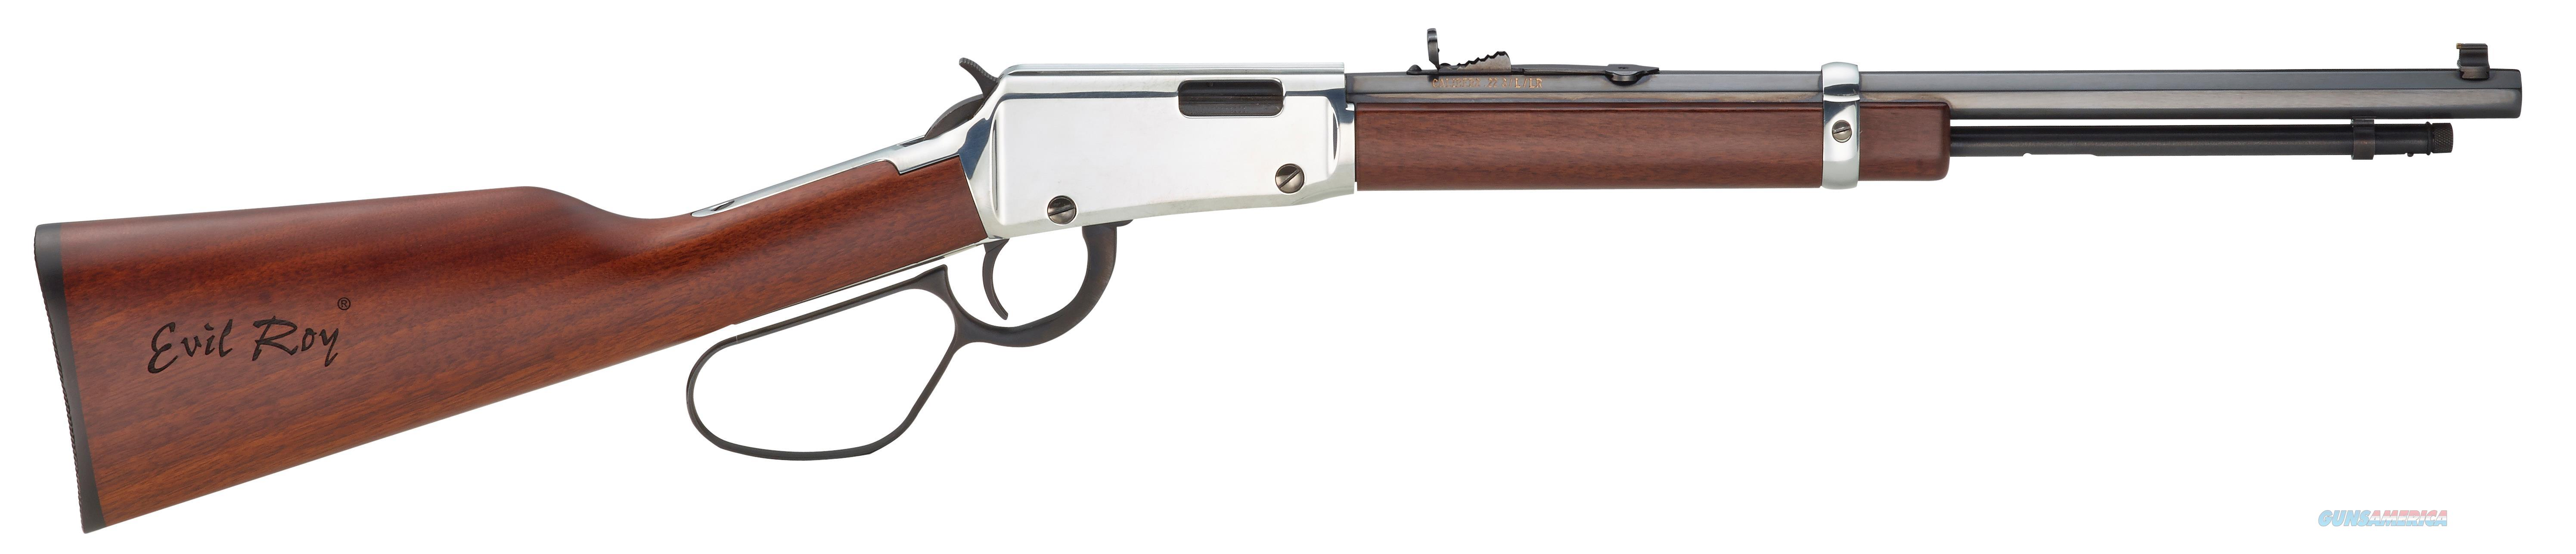 "Henry Repeating Arms Evil Roy 22Mag16.5"" Slv/Blue Octagon 7Rd H001TMER  Guns > Rifles > H Misc Rifles"